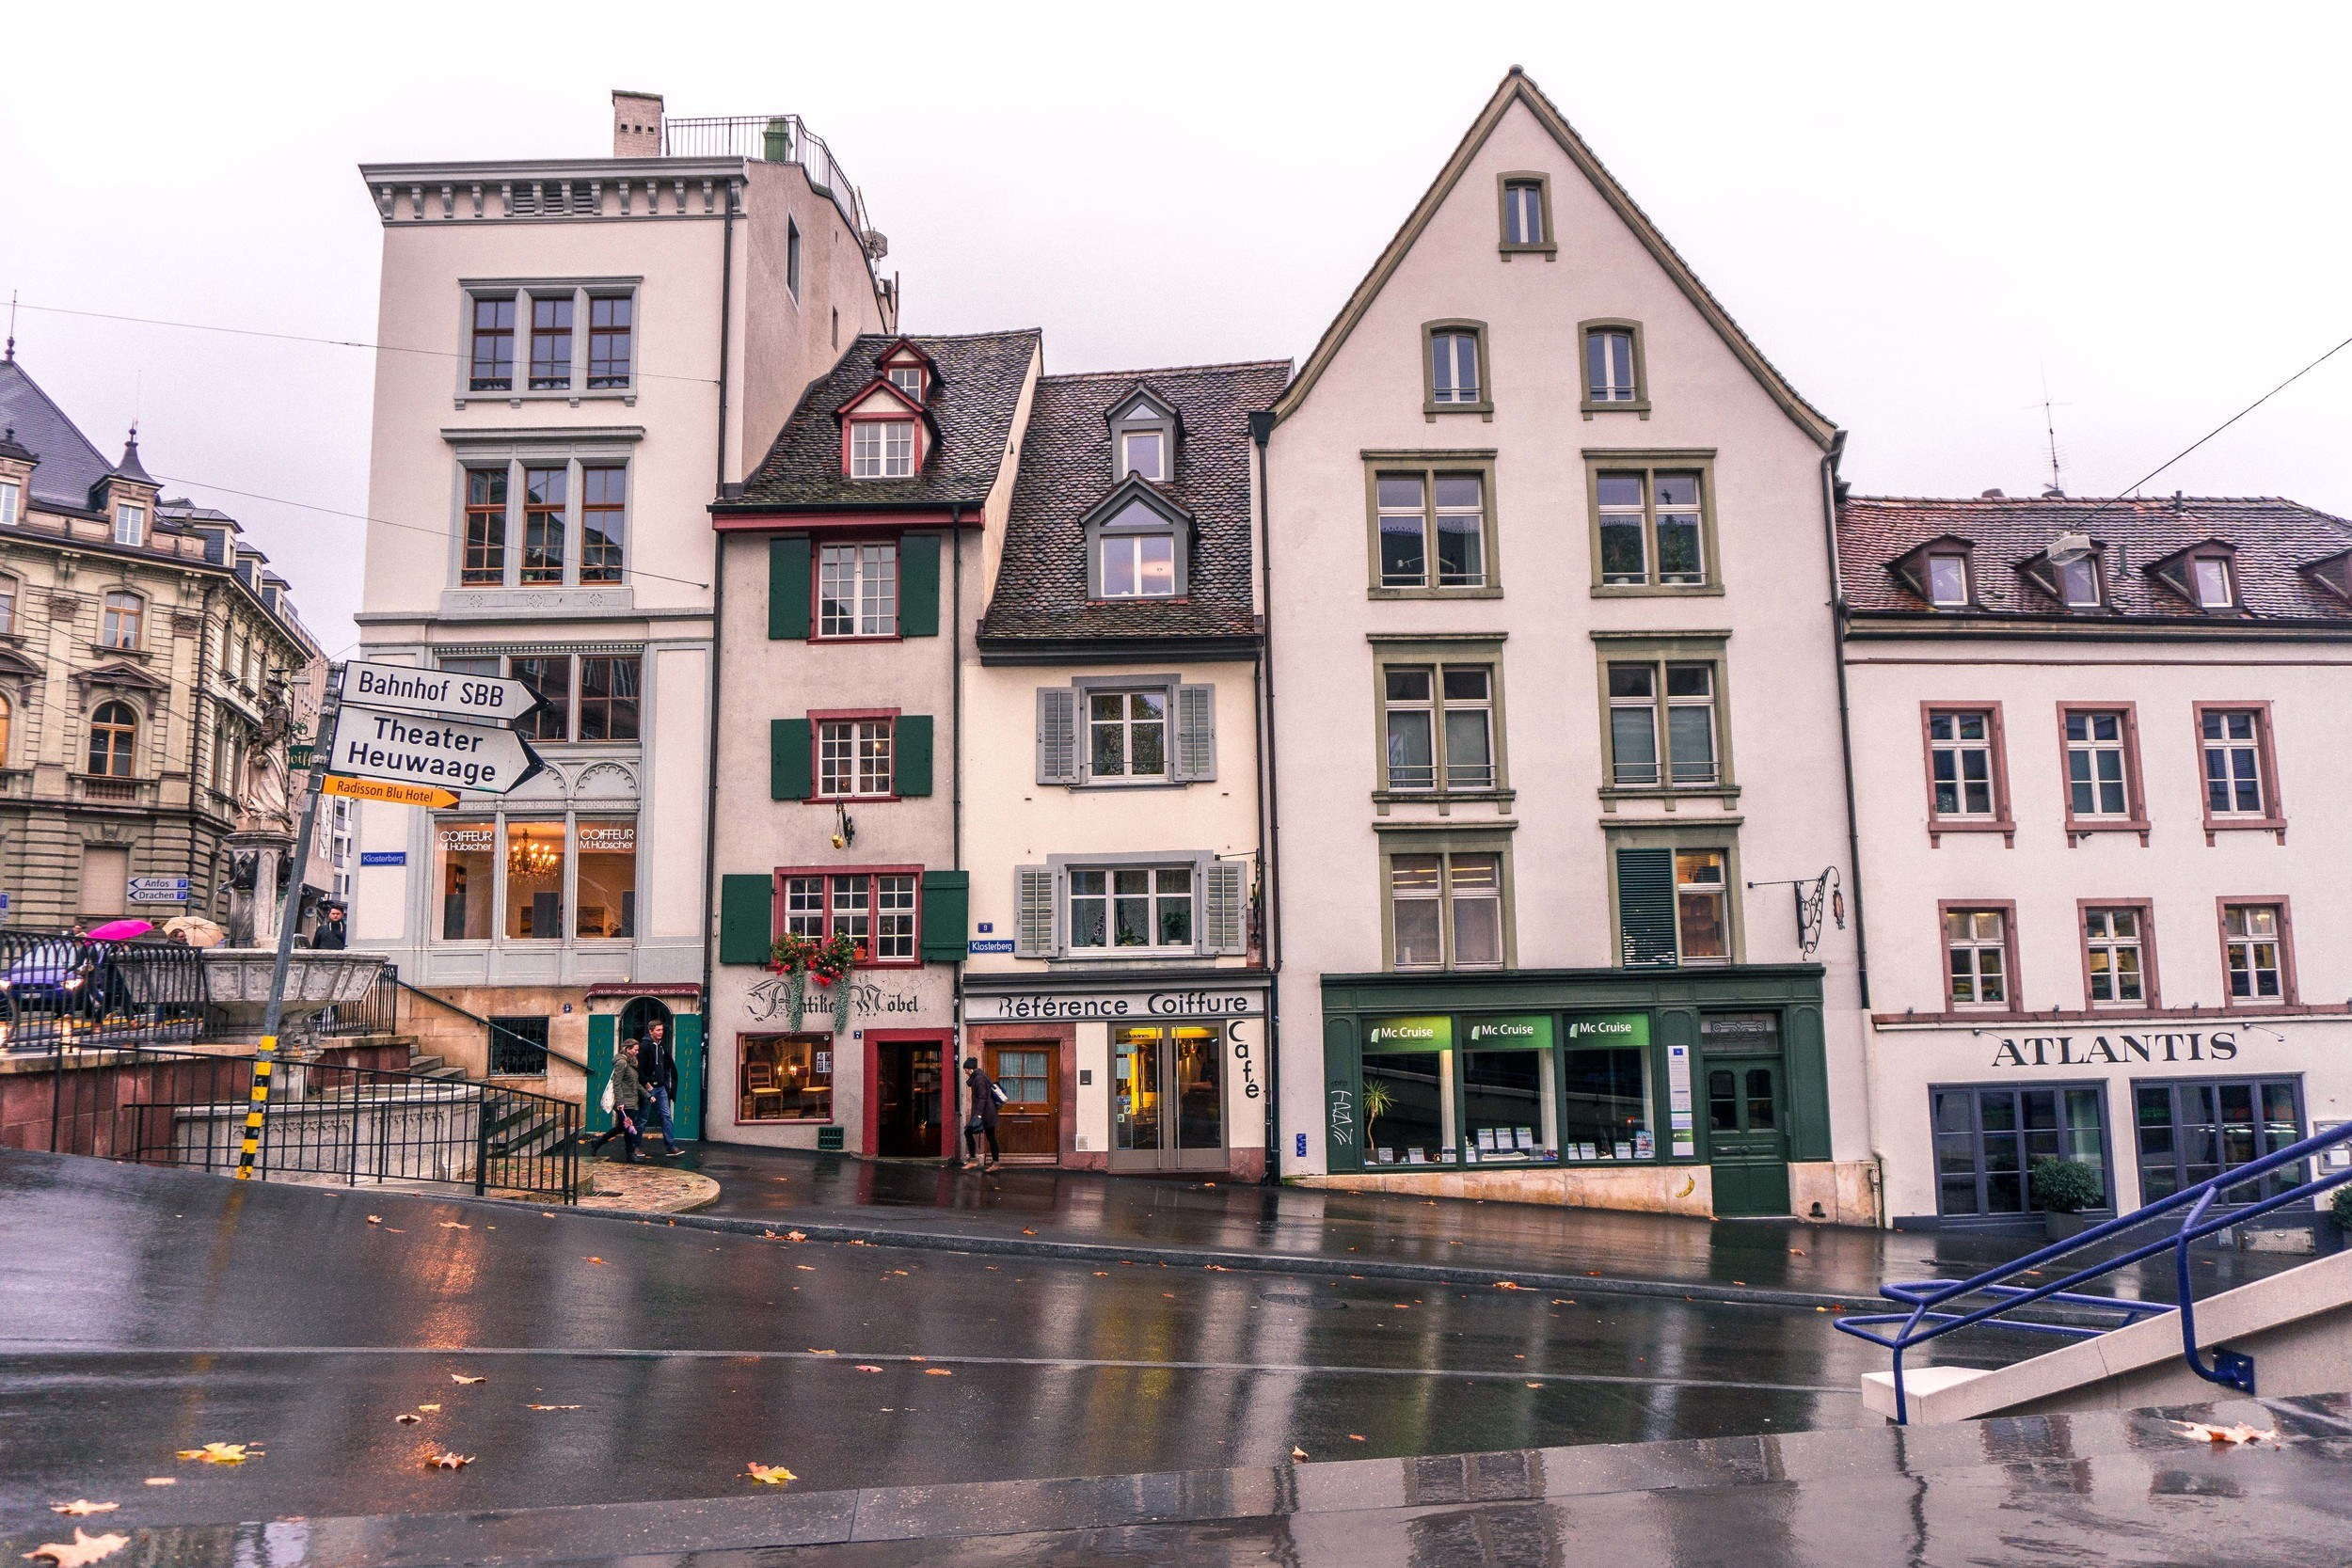 A guide to the best things to do in Basel Switzerland. Here's what to do, where to stay, how to visit and attractions in Basel, Canton of Basel-Stadt (including art museums, Basel Minster, and spalentor Medieval Gate)